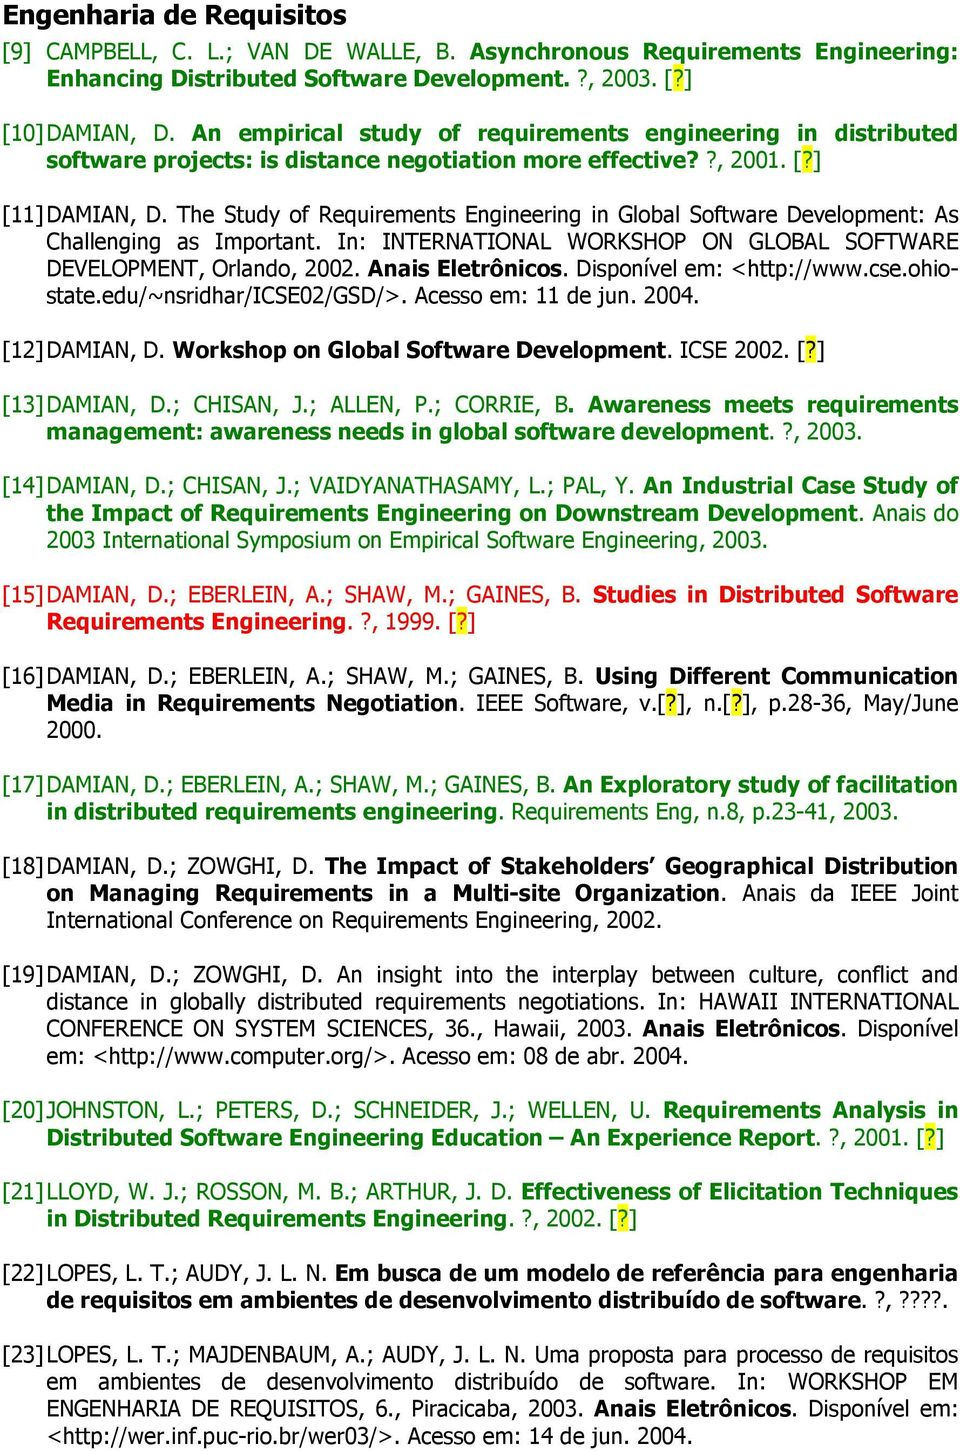 The Study of Requirements Engineering in Global Software Development: As Challenging as Important. In: INTERNATIONAL WORKSHOP ON GLOBAL SOFTWARE DEVELOPMENT, Orlando, 2002. Anais Eletrônicos.